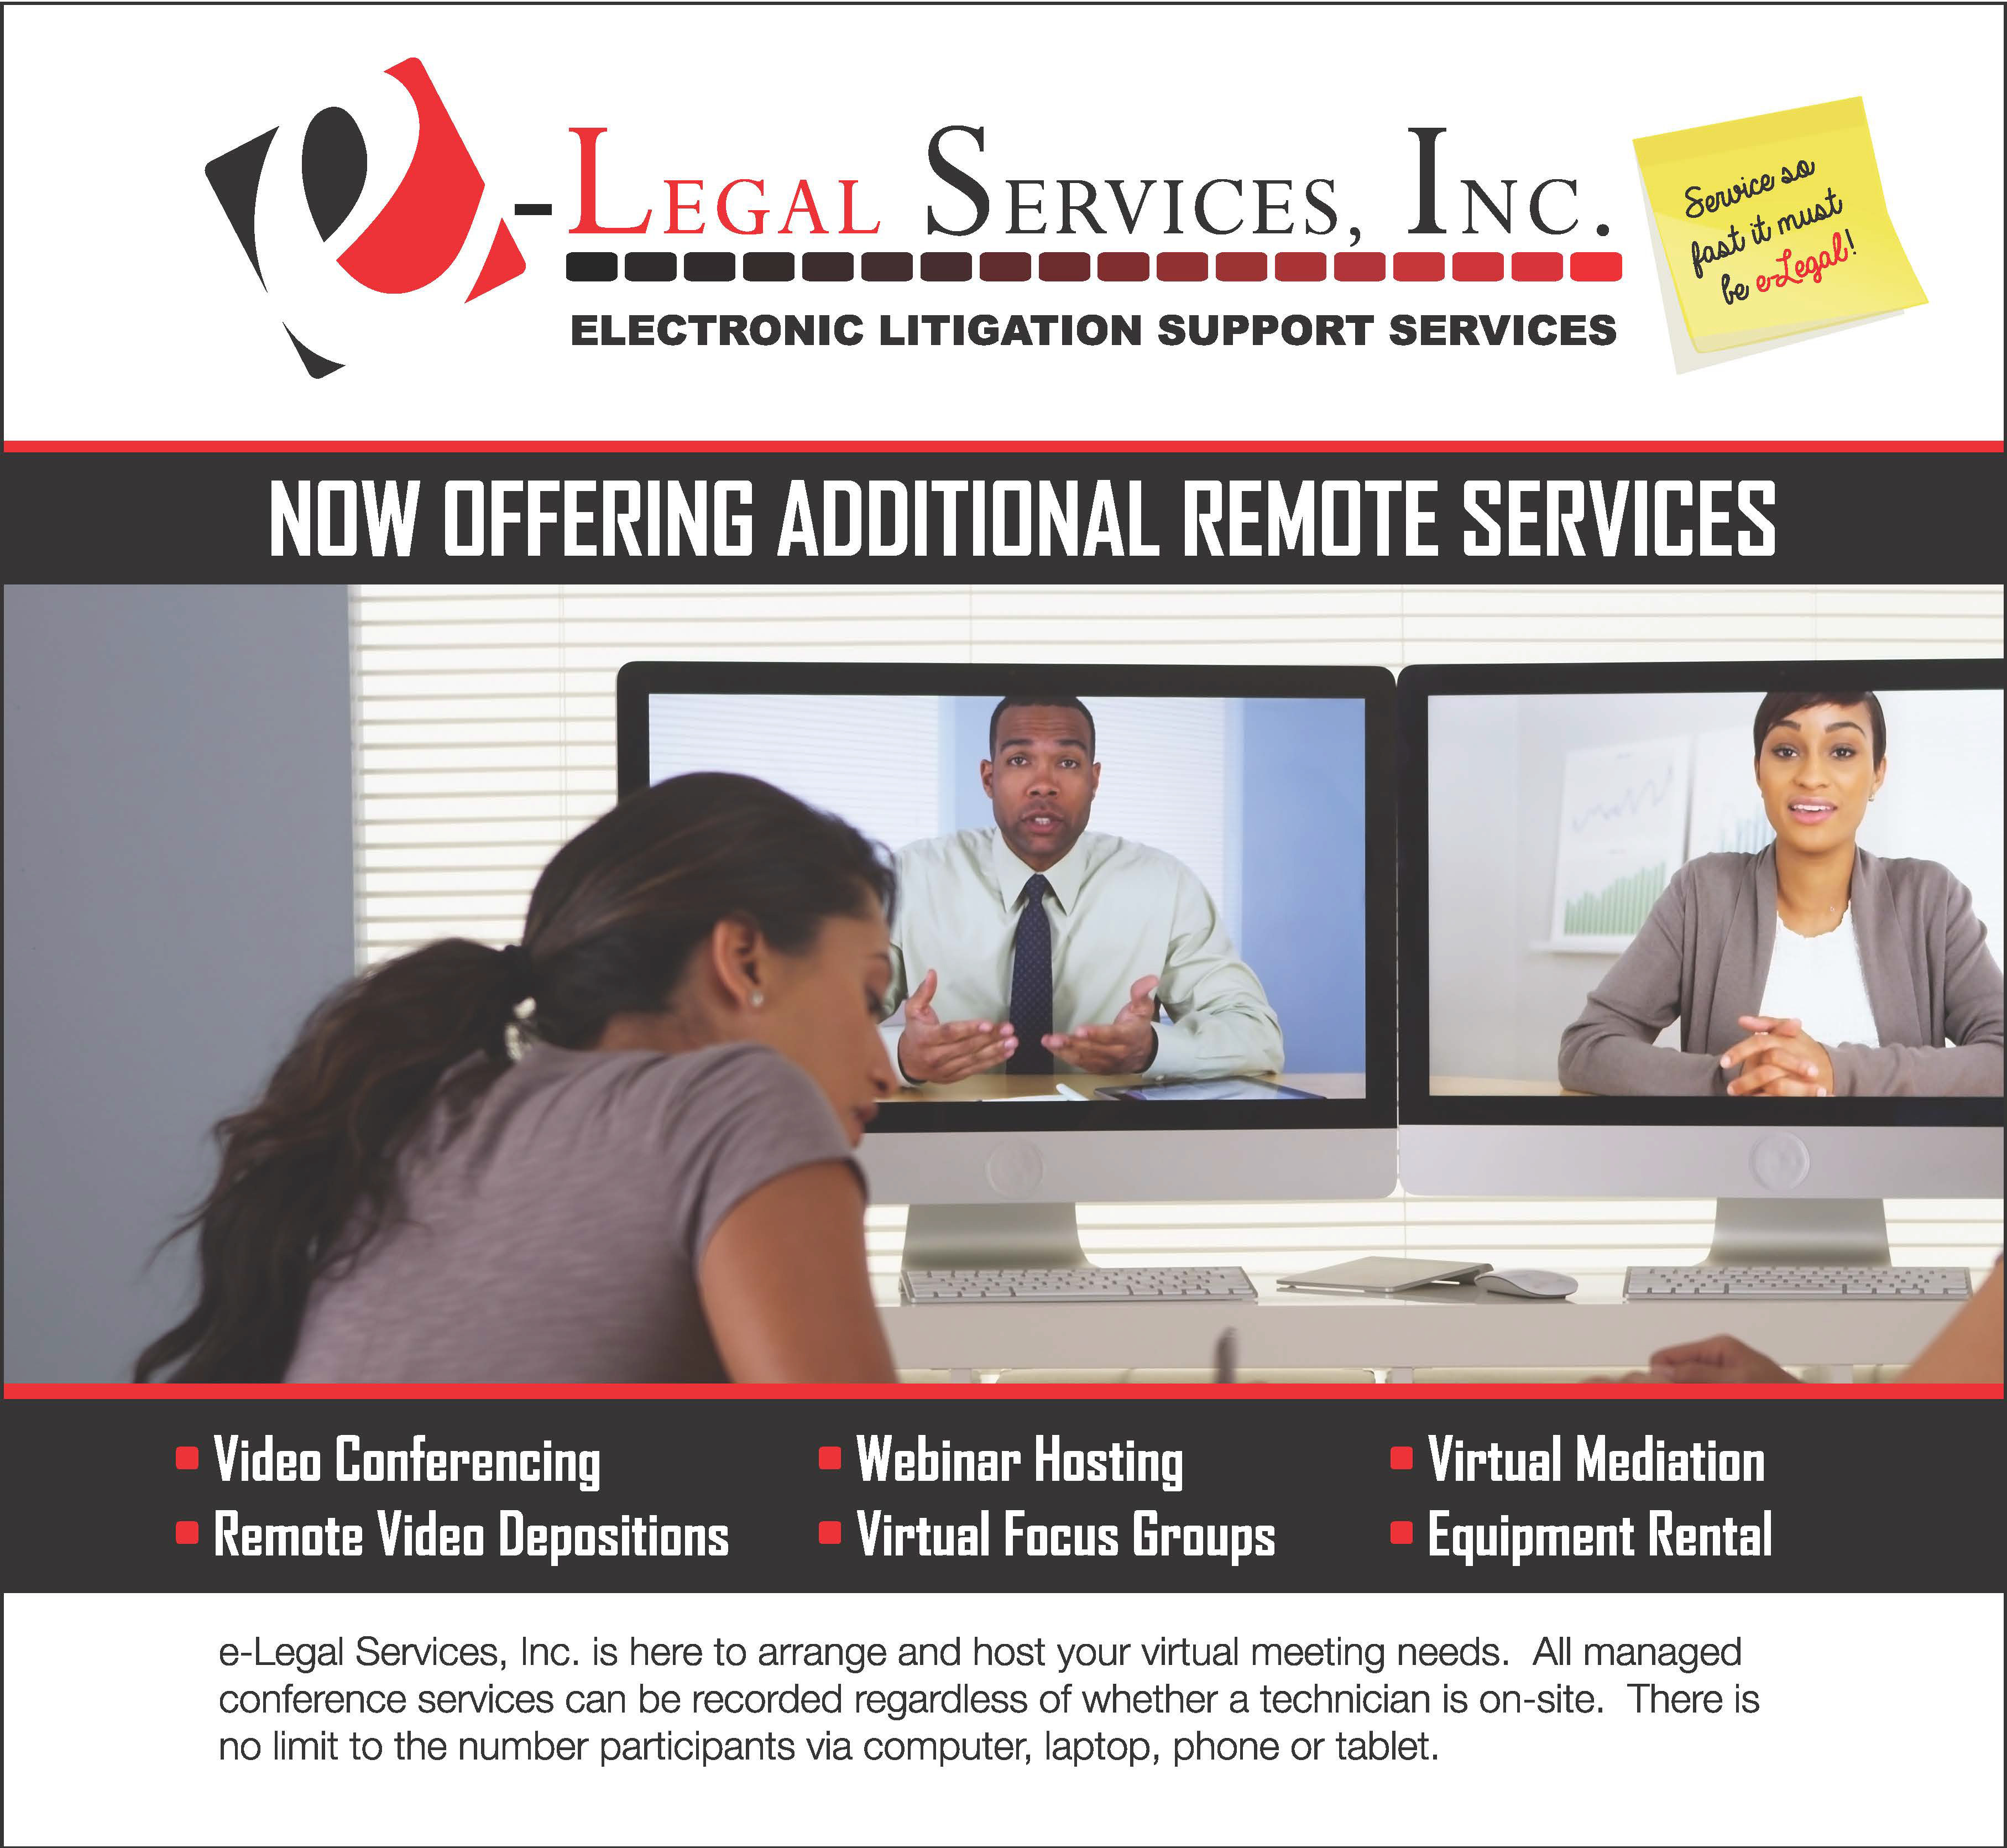 e-Legal Services, Inc. is here to arrange and host your virtual meeting needs. All managed conference services can be recorded regardless of whether a technician is on-site. There is no limit to the number participants via computer, laptop, phone or tablet.